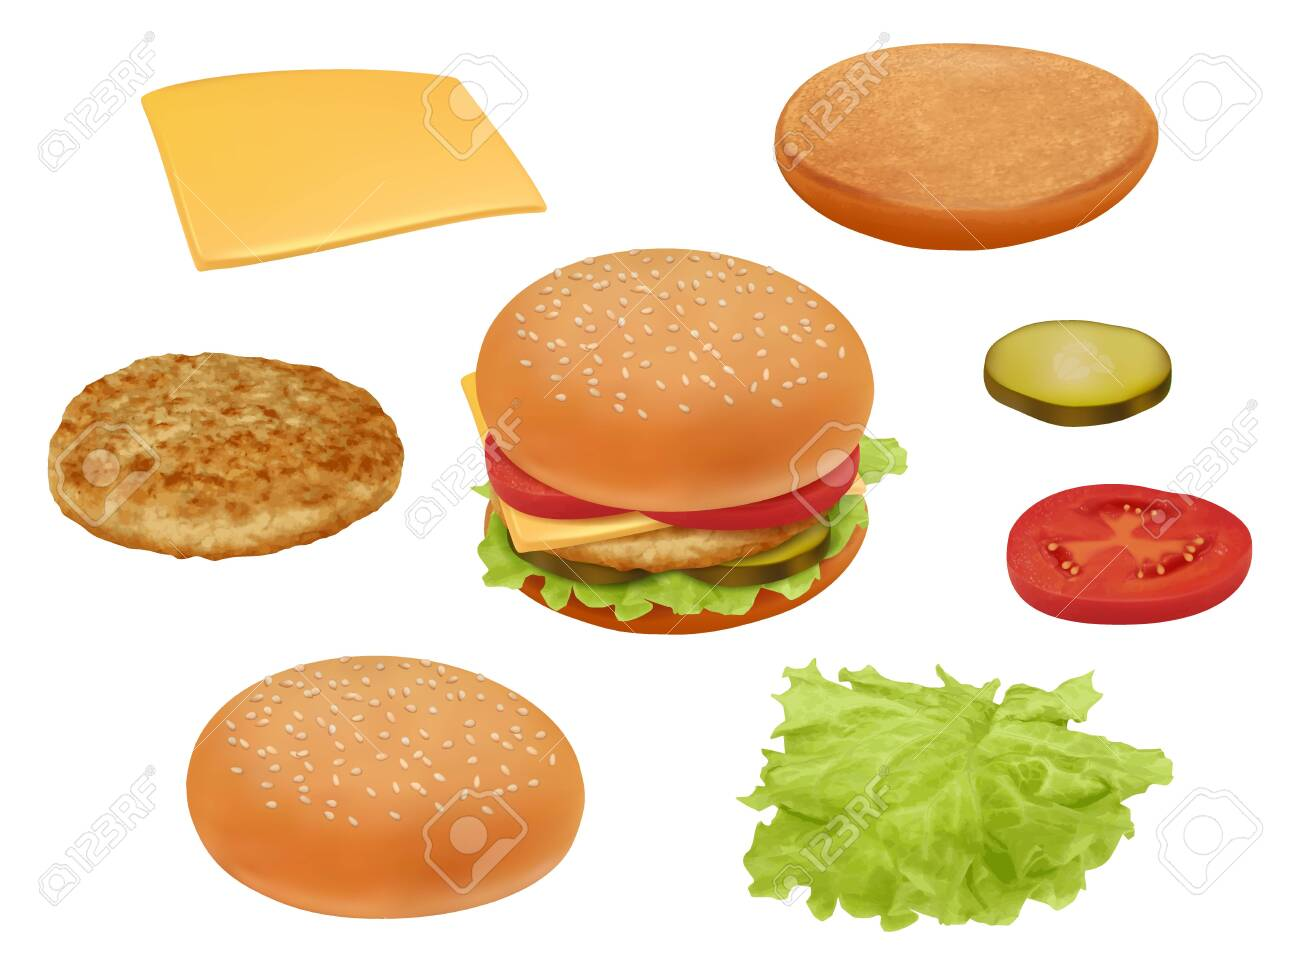 Hamburgher. Realistic fast food ingredients vegetables tomato beef meal salad delicious food vector constructor. Illustration hamburger or cheeseburger, lettuce and bread - 133932554